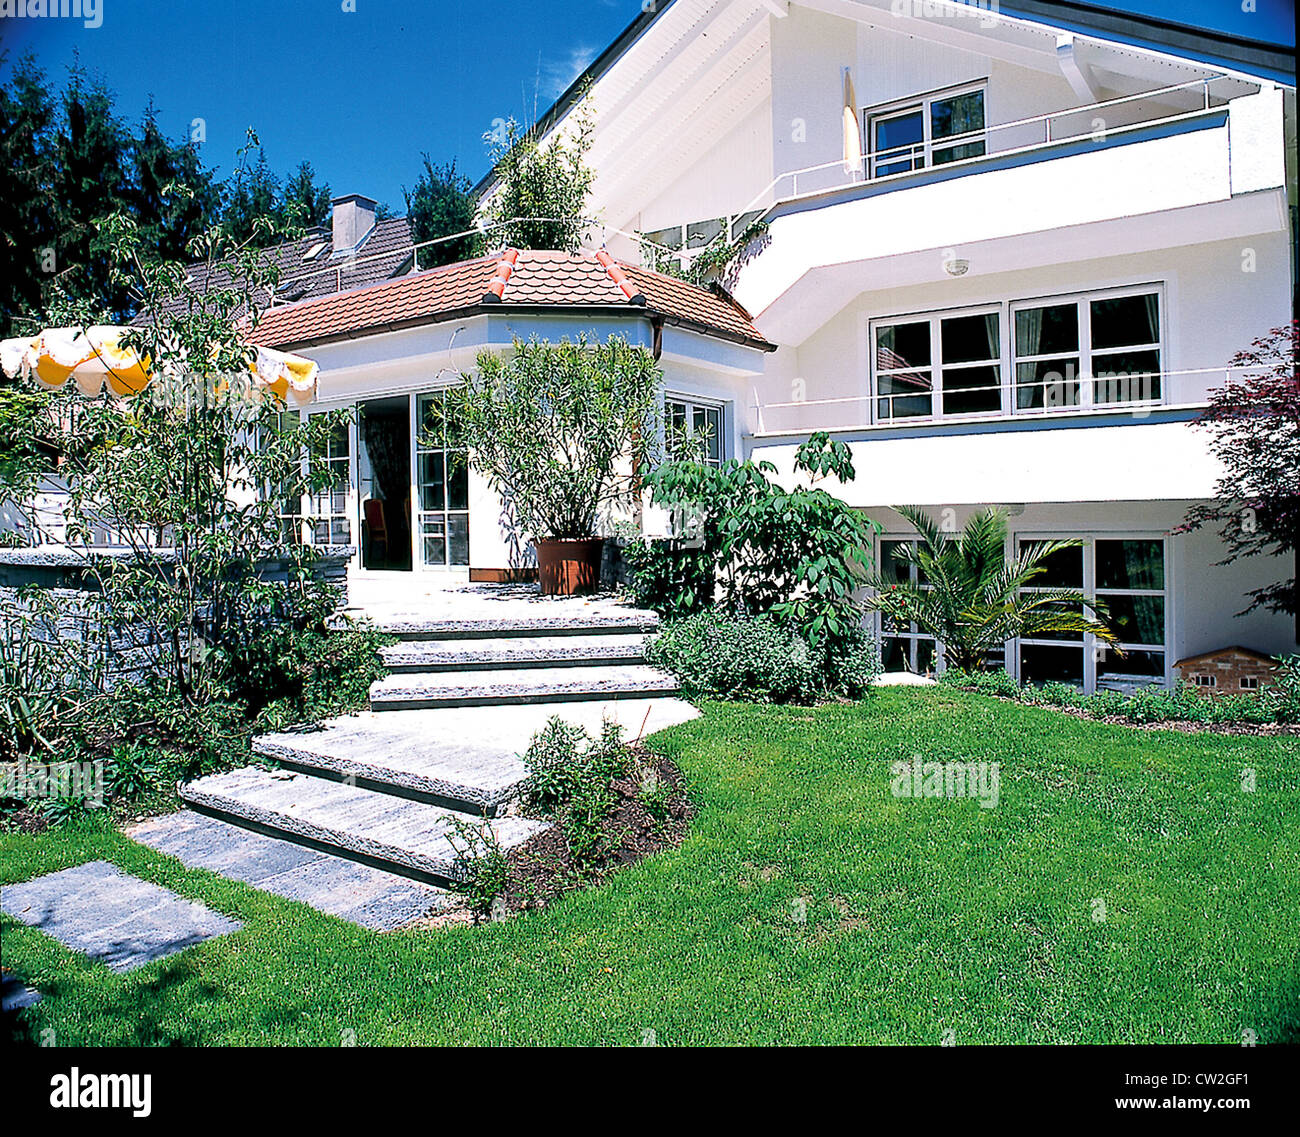 Dream House With Garden